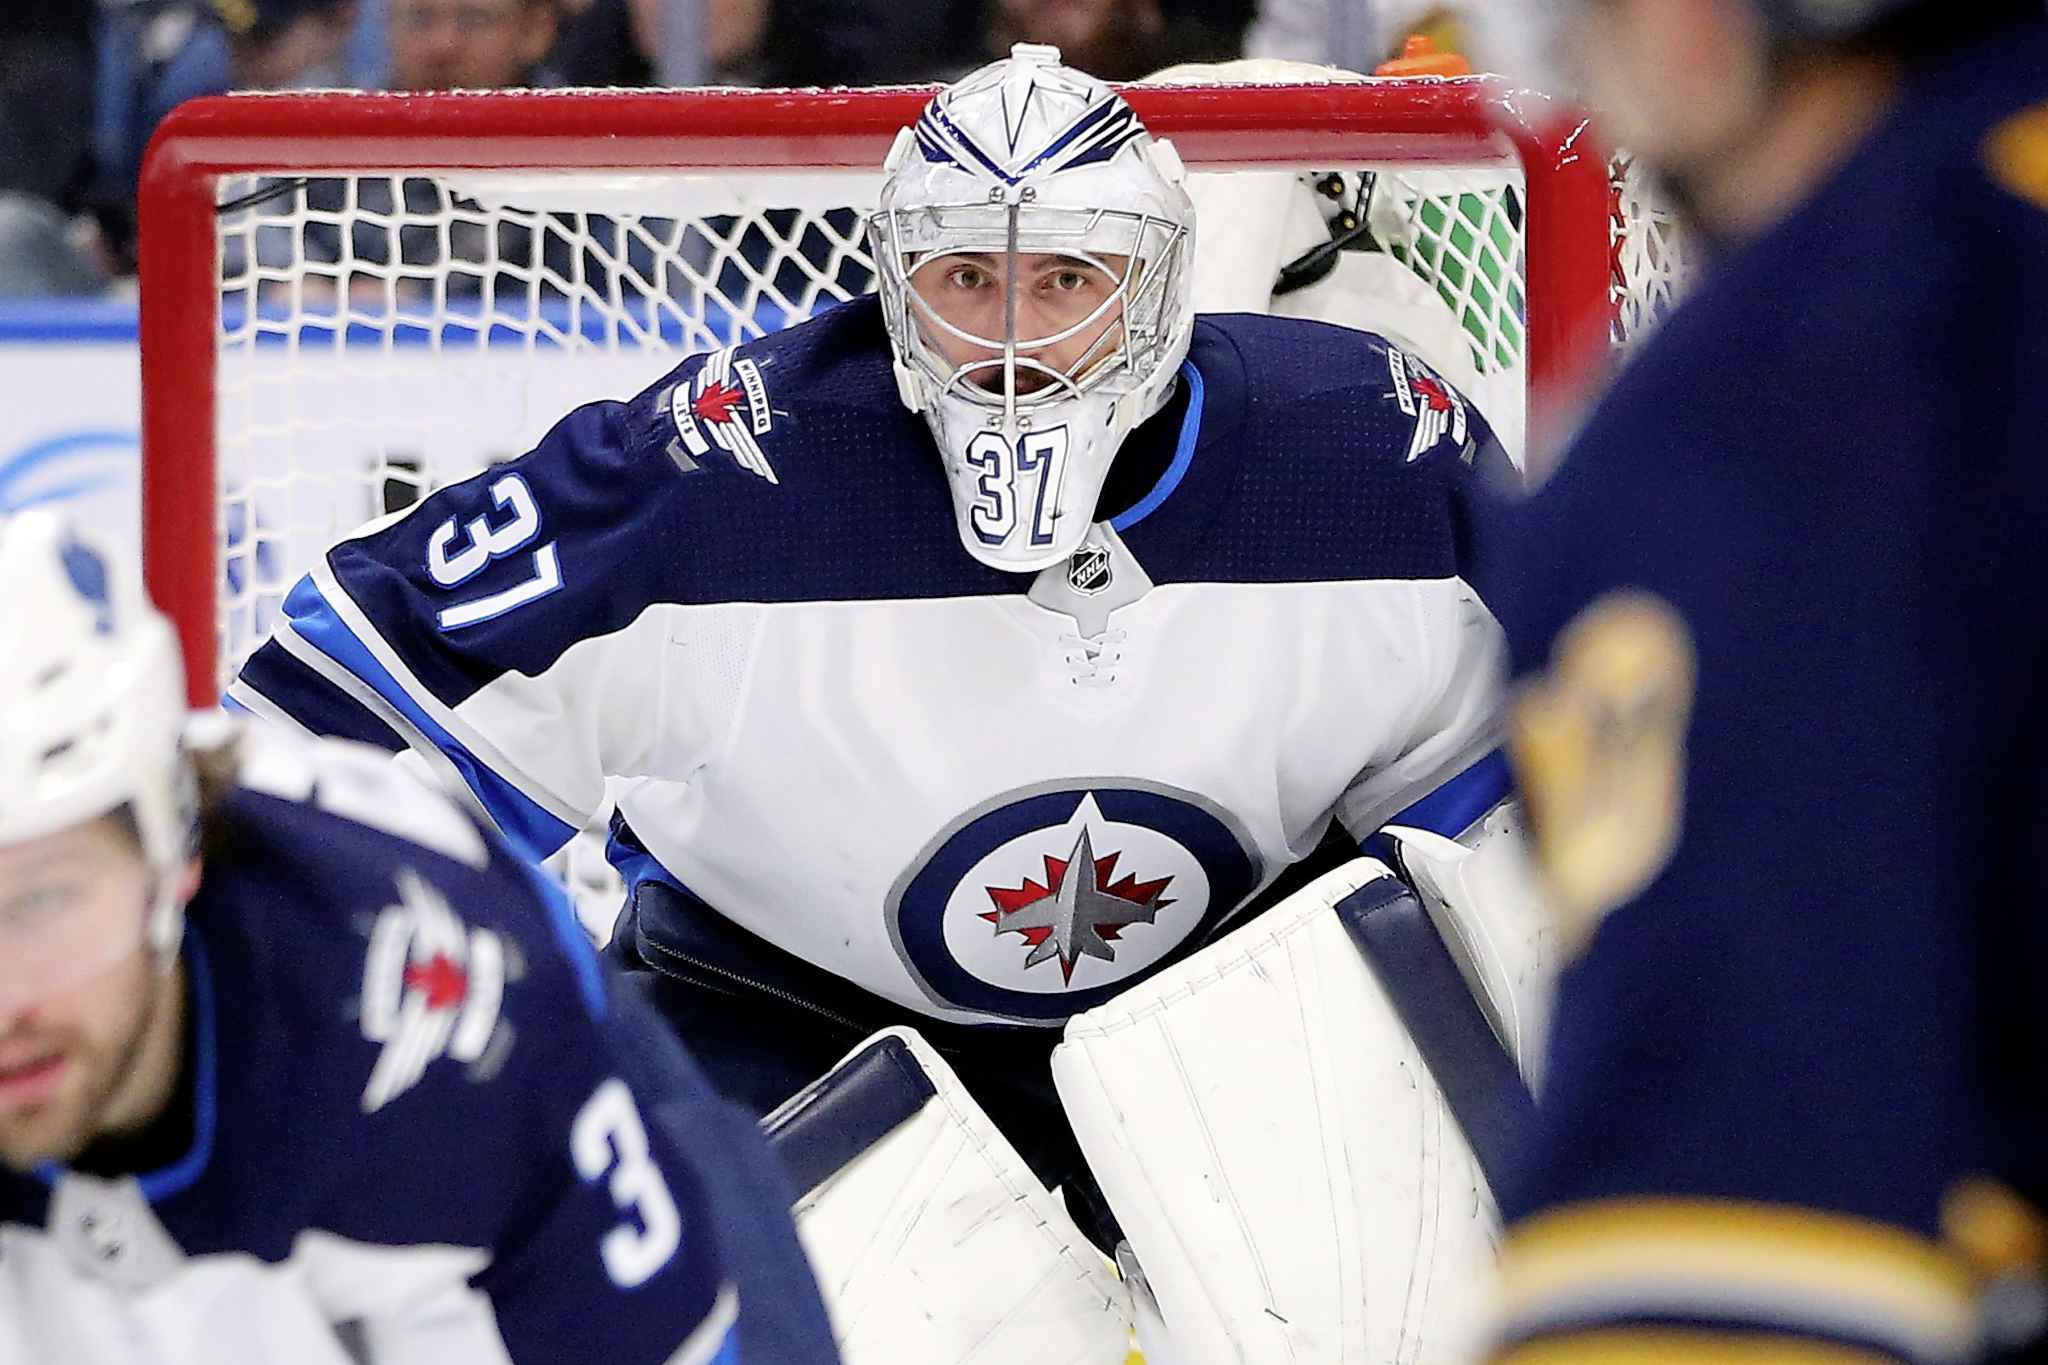 Winnipeg Jets goalie Connor Hellebuyck was having a Vezina-calibre season and was even in the discussions for the Hart trophy, when the NHL decided to pause its season due to COVID-19 concerns.